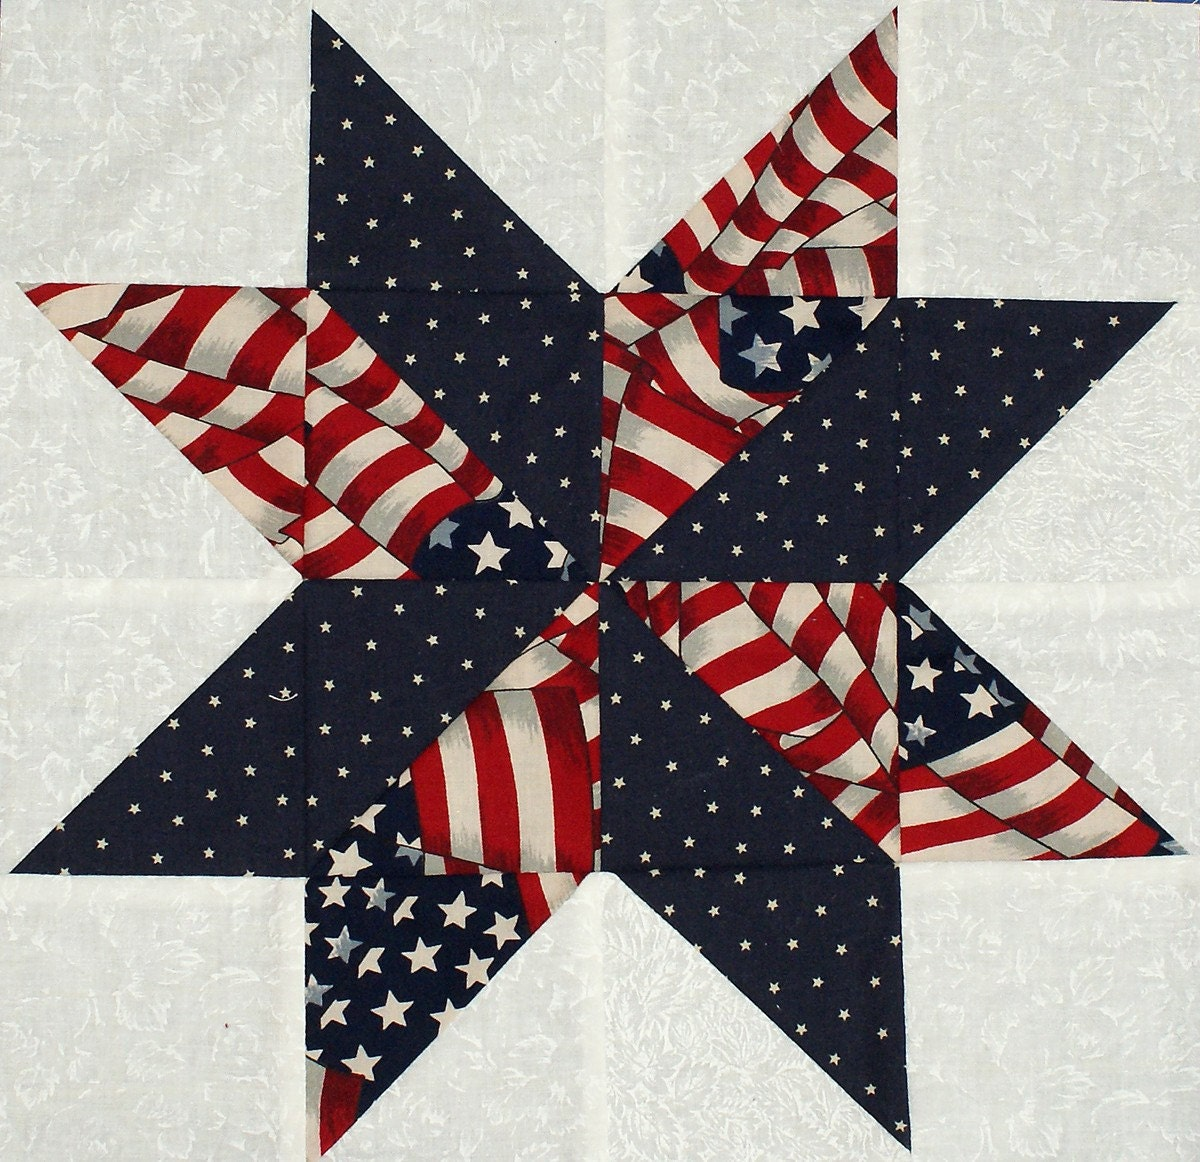 Free Star Flower Quilt Patterns : Starflower Quilt Blocks Patriotic Flag and Star Prints